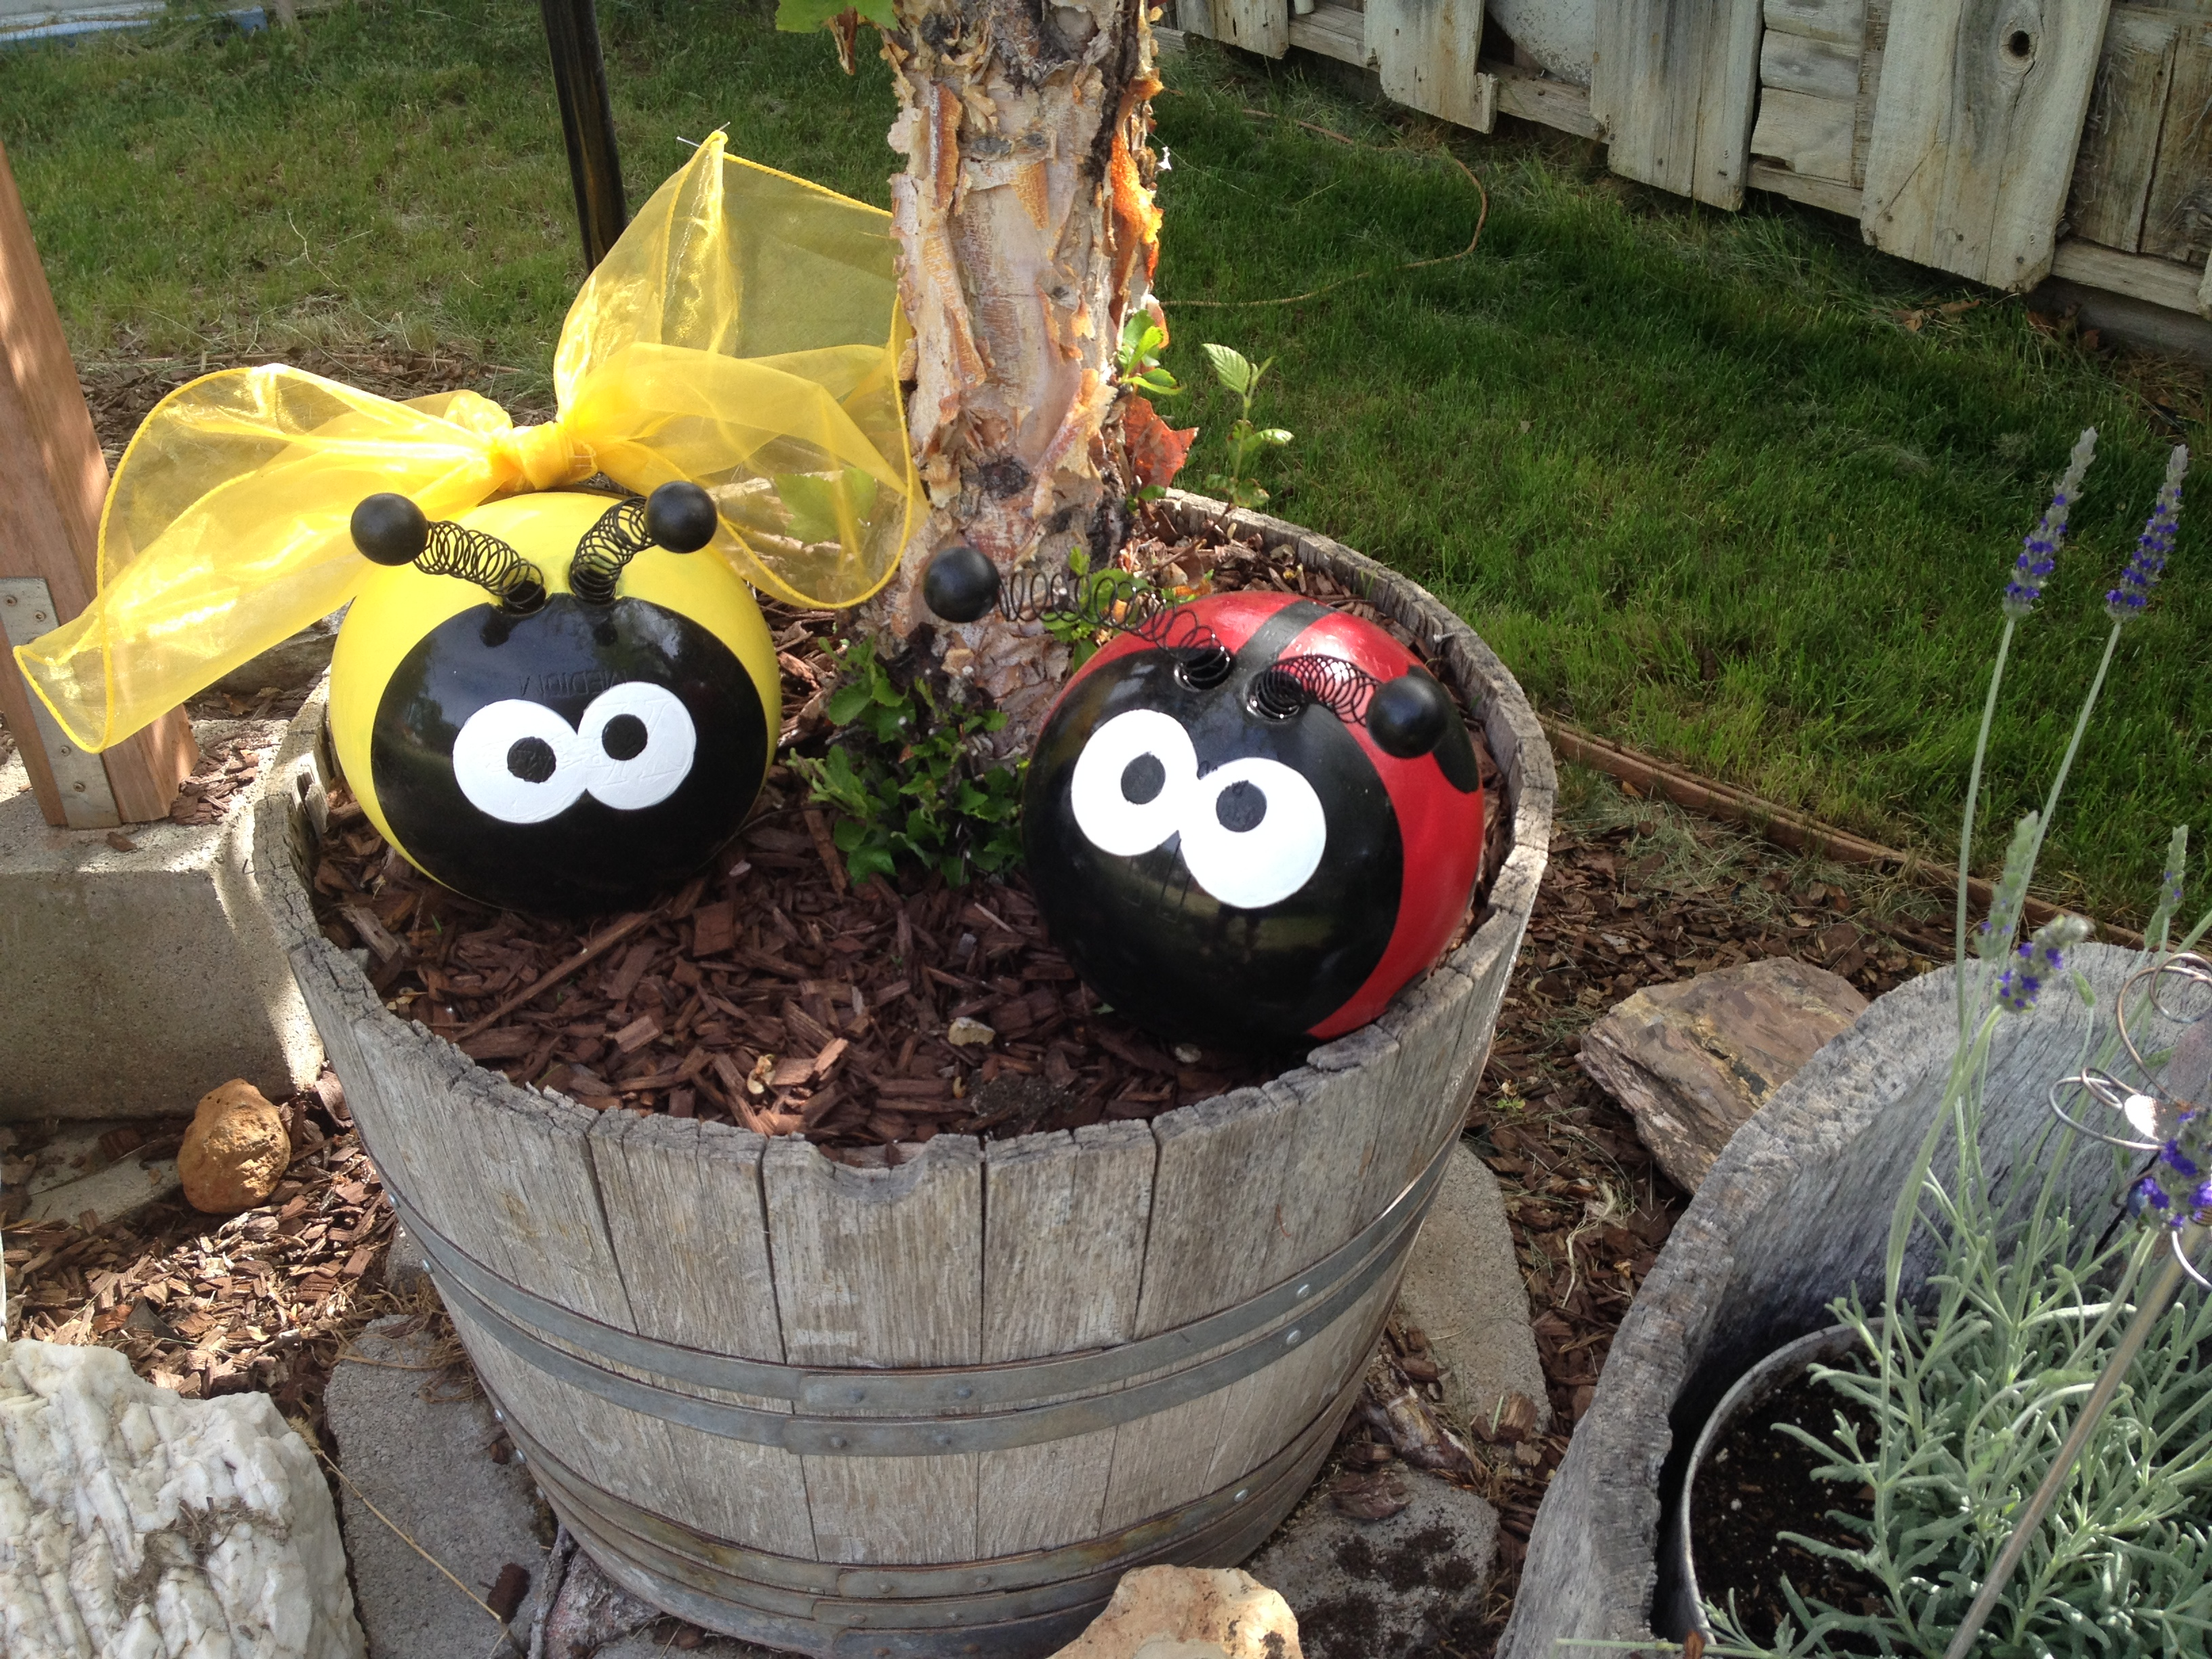 Bowling ball garden cuties | CRAFTS/ART | Pinterest ...